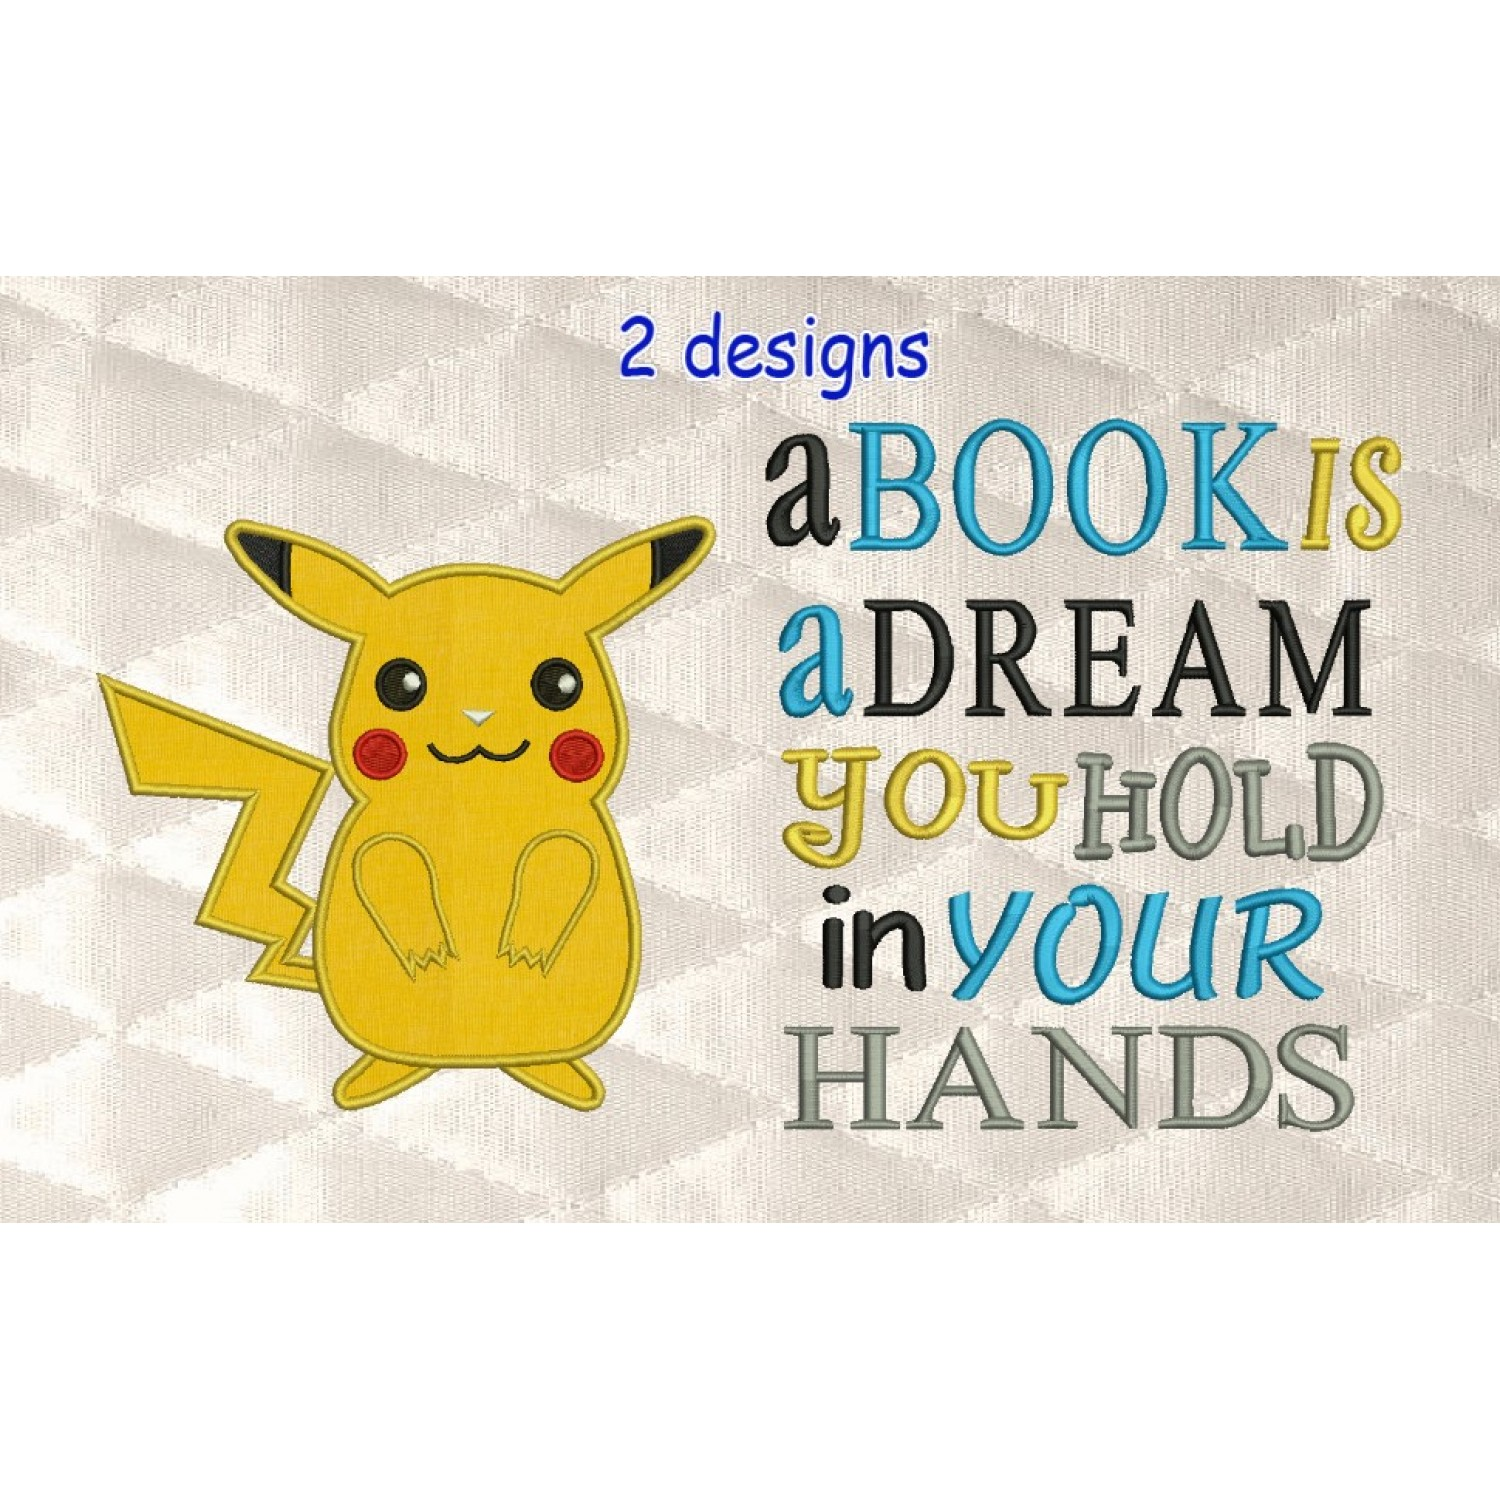 Pokemon Pikachu with a book is a dream